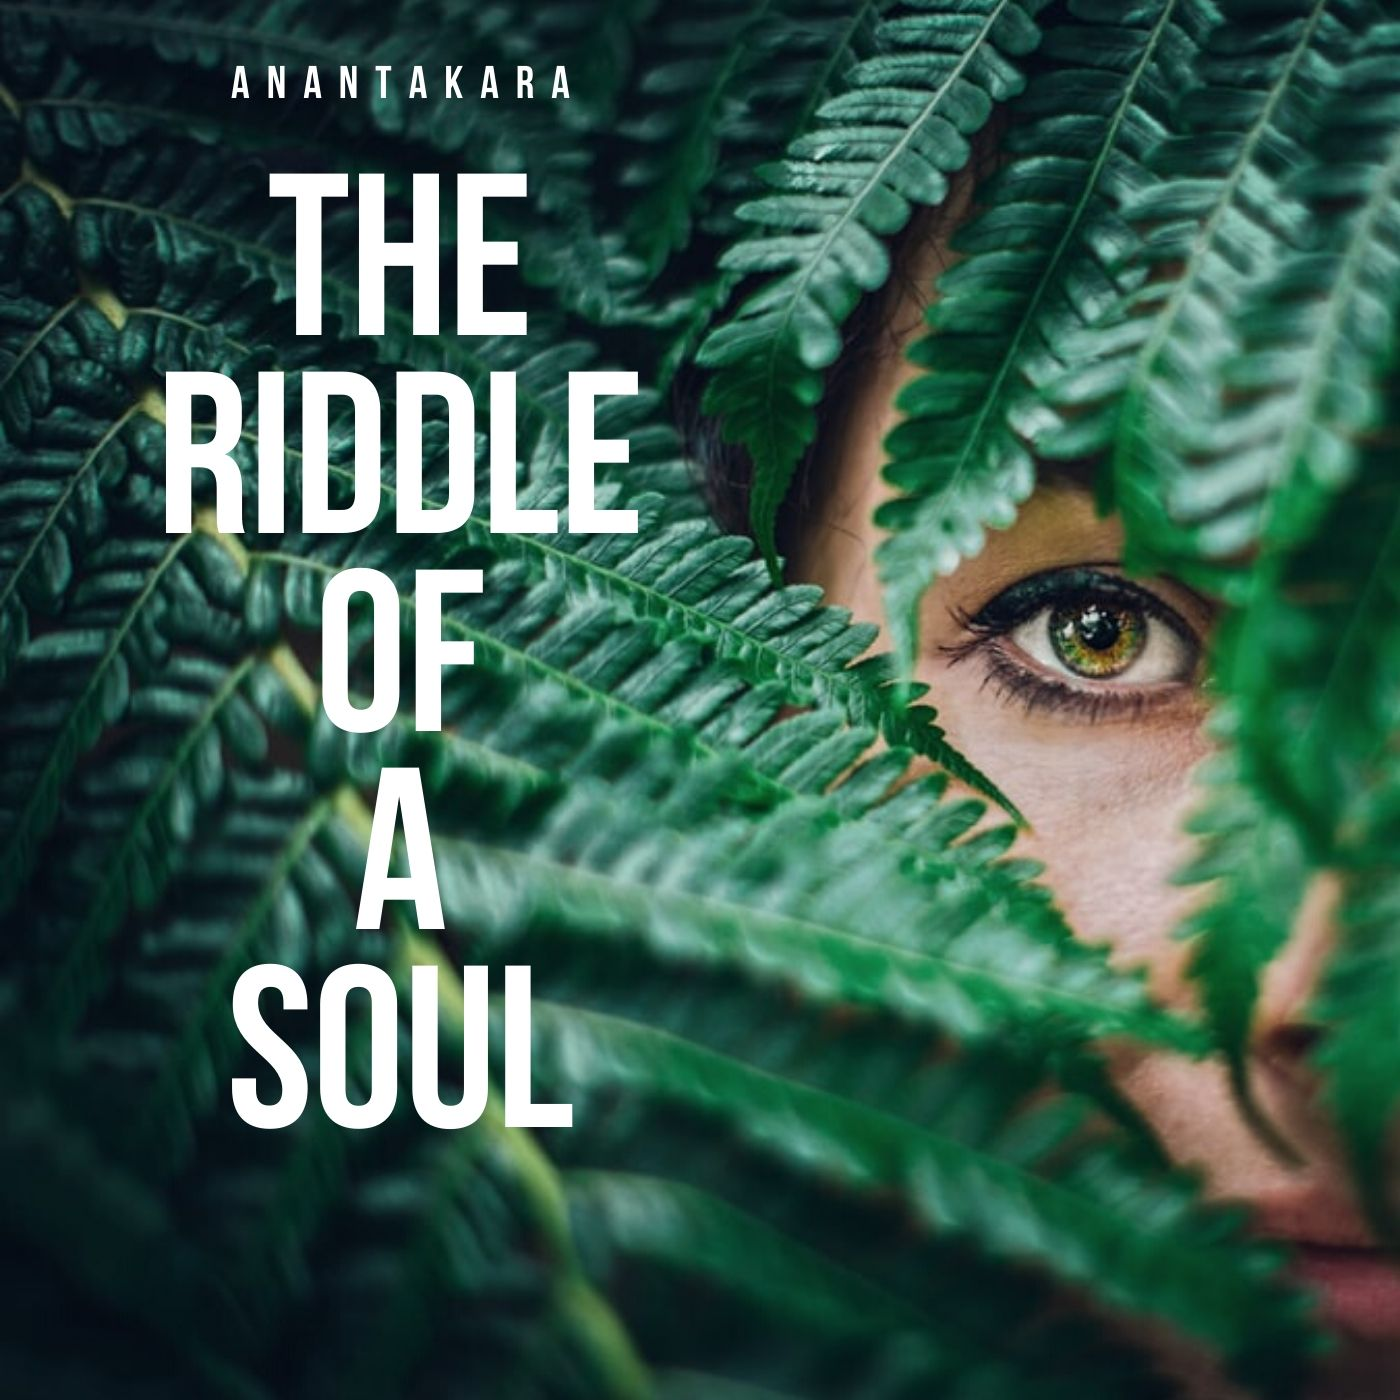 Riddle Of A Soul by Anantakara